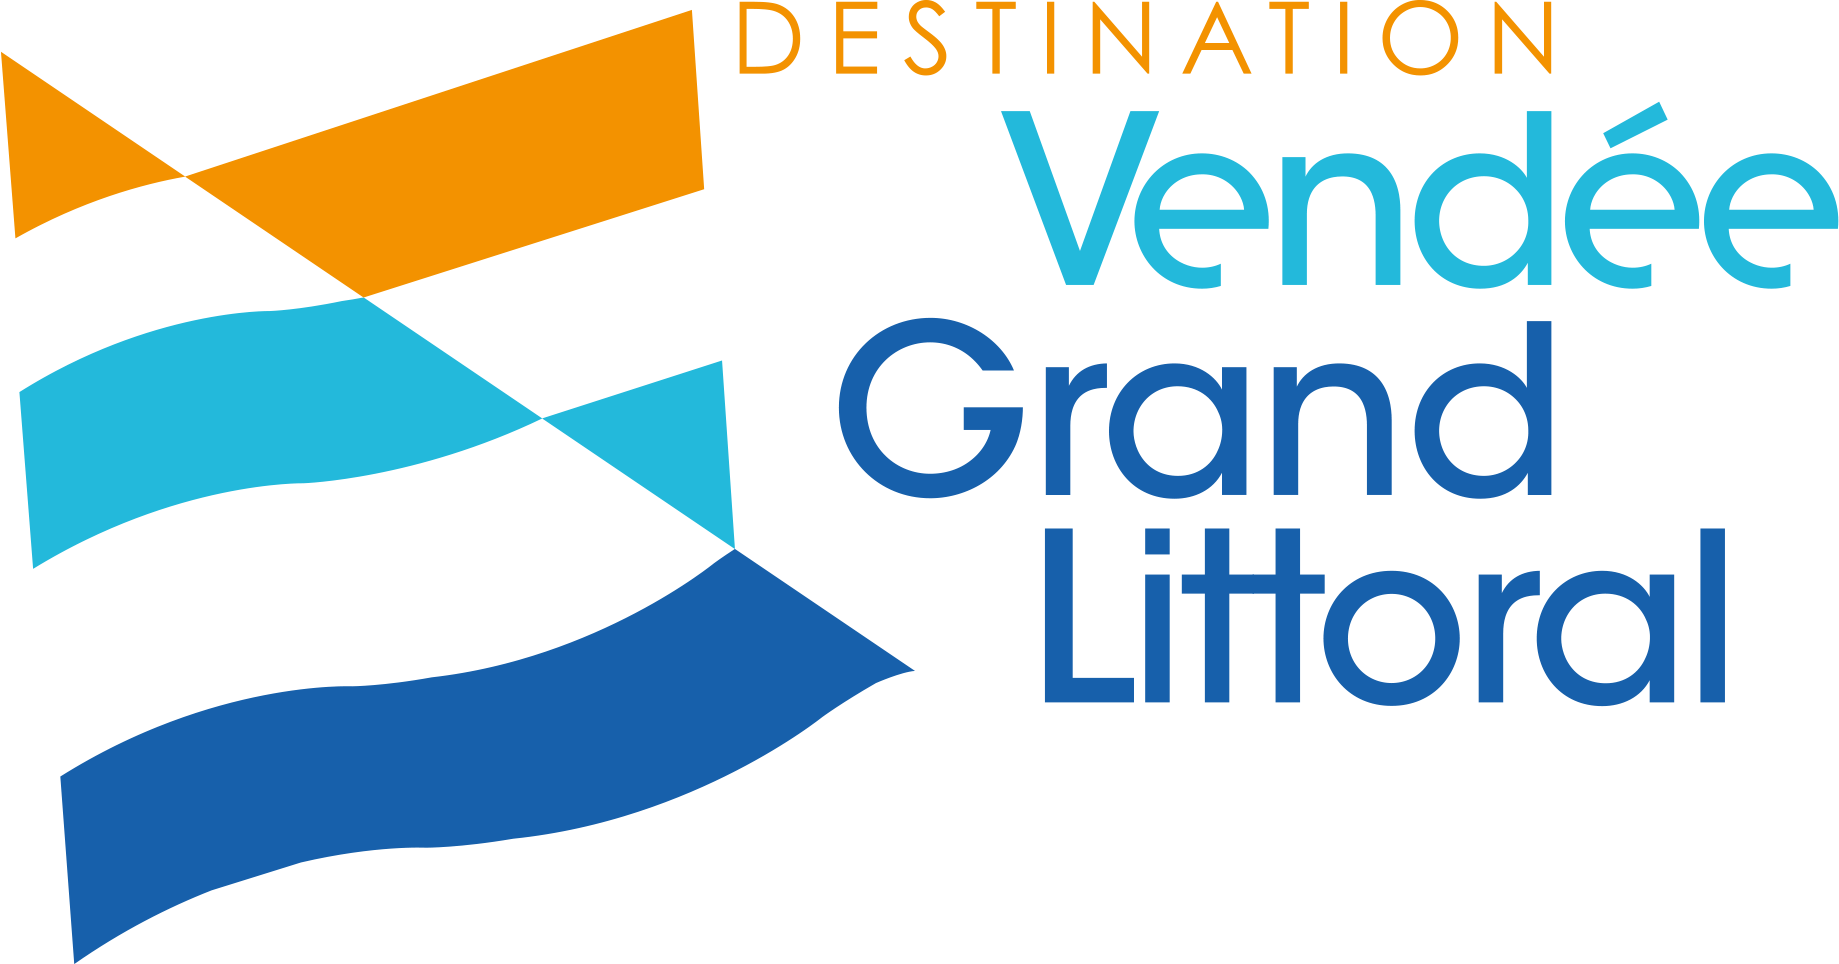 Destination Vendée Grand Littoral